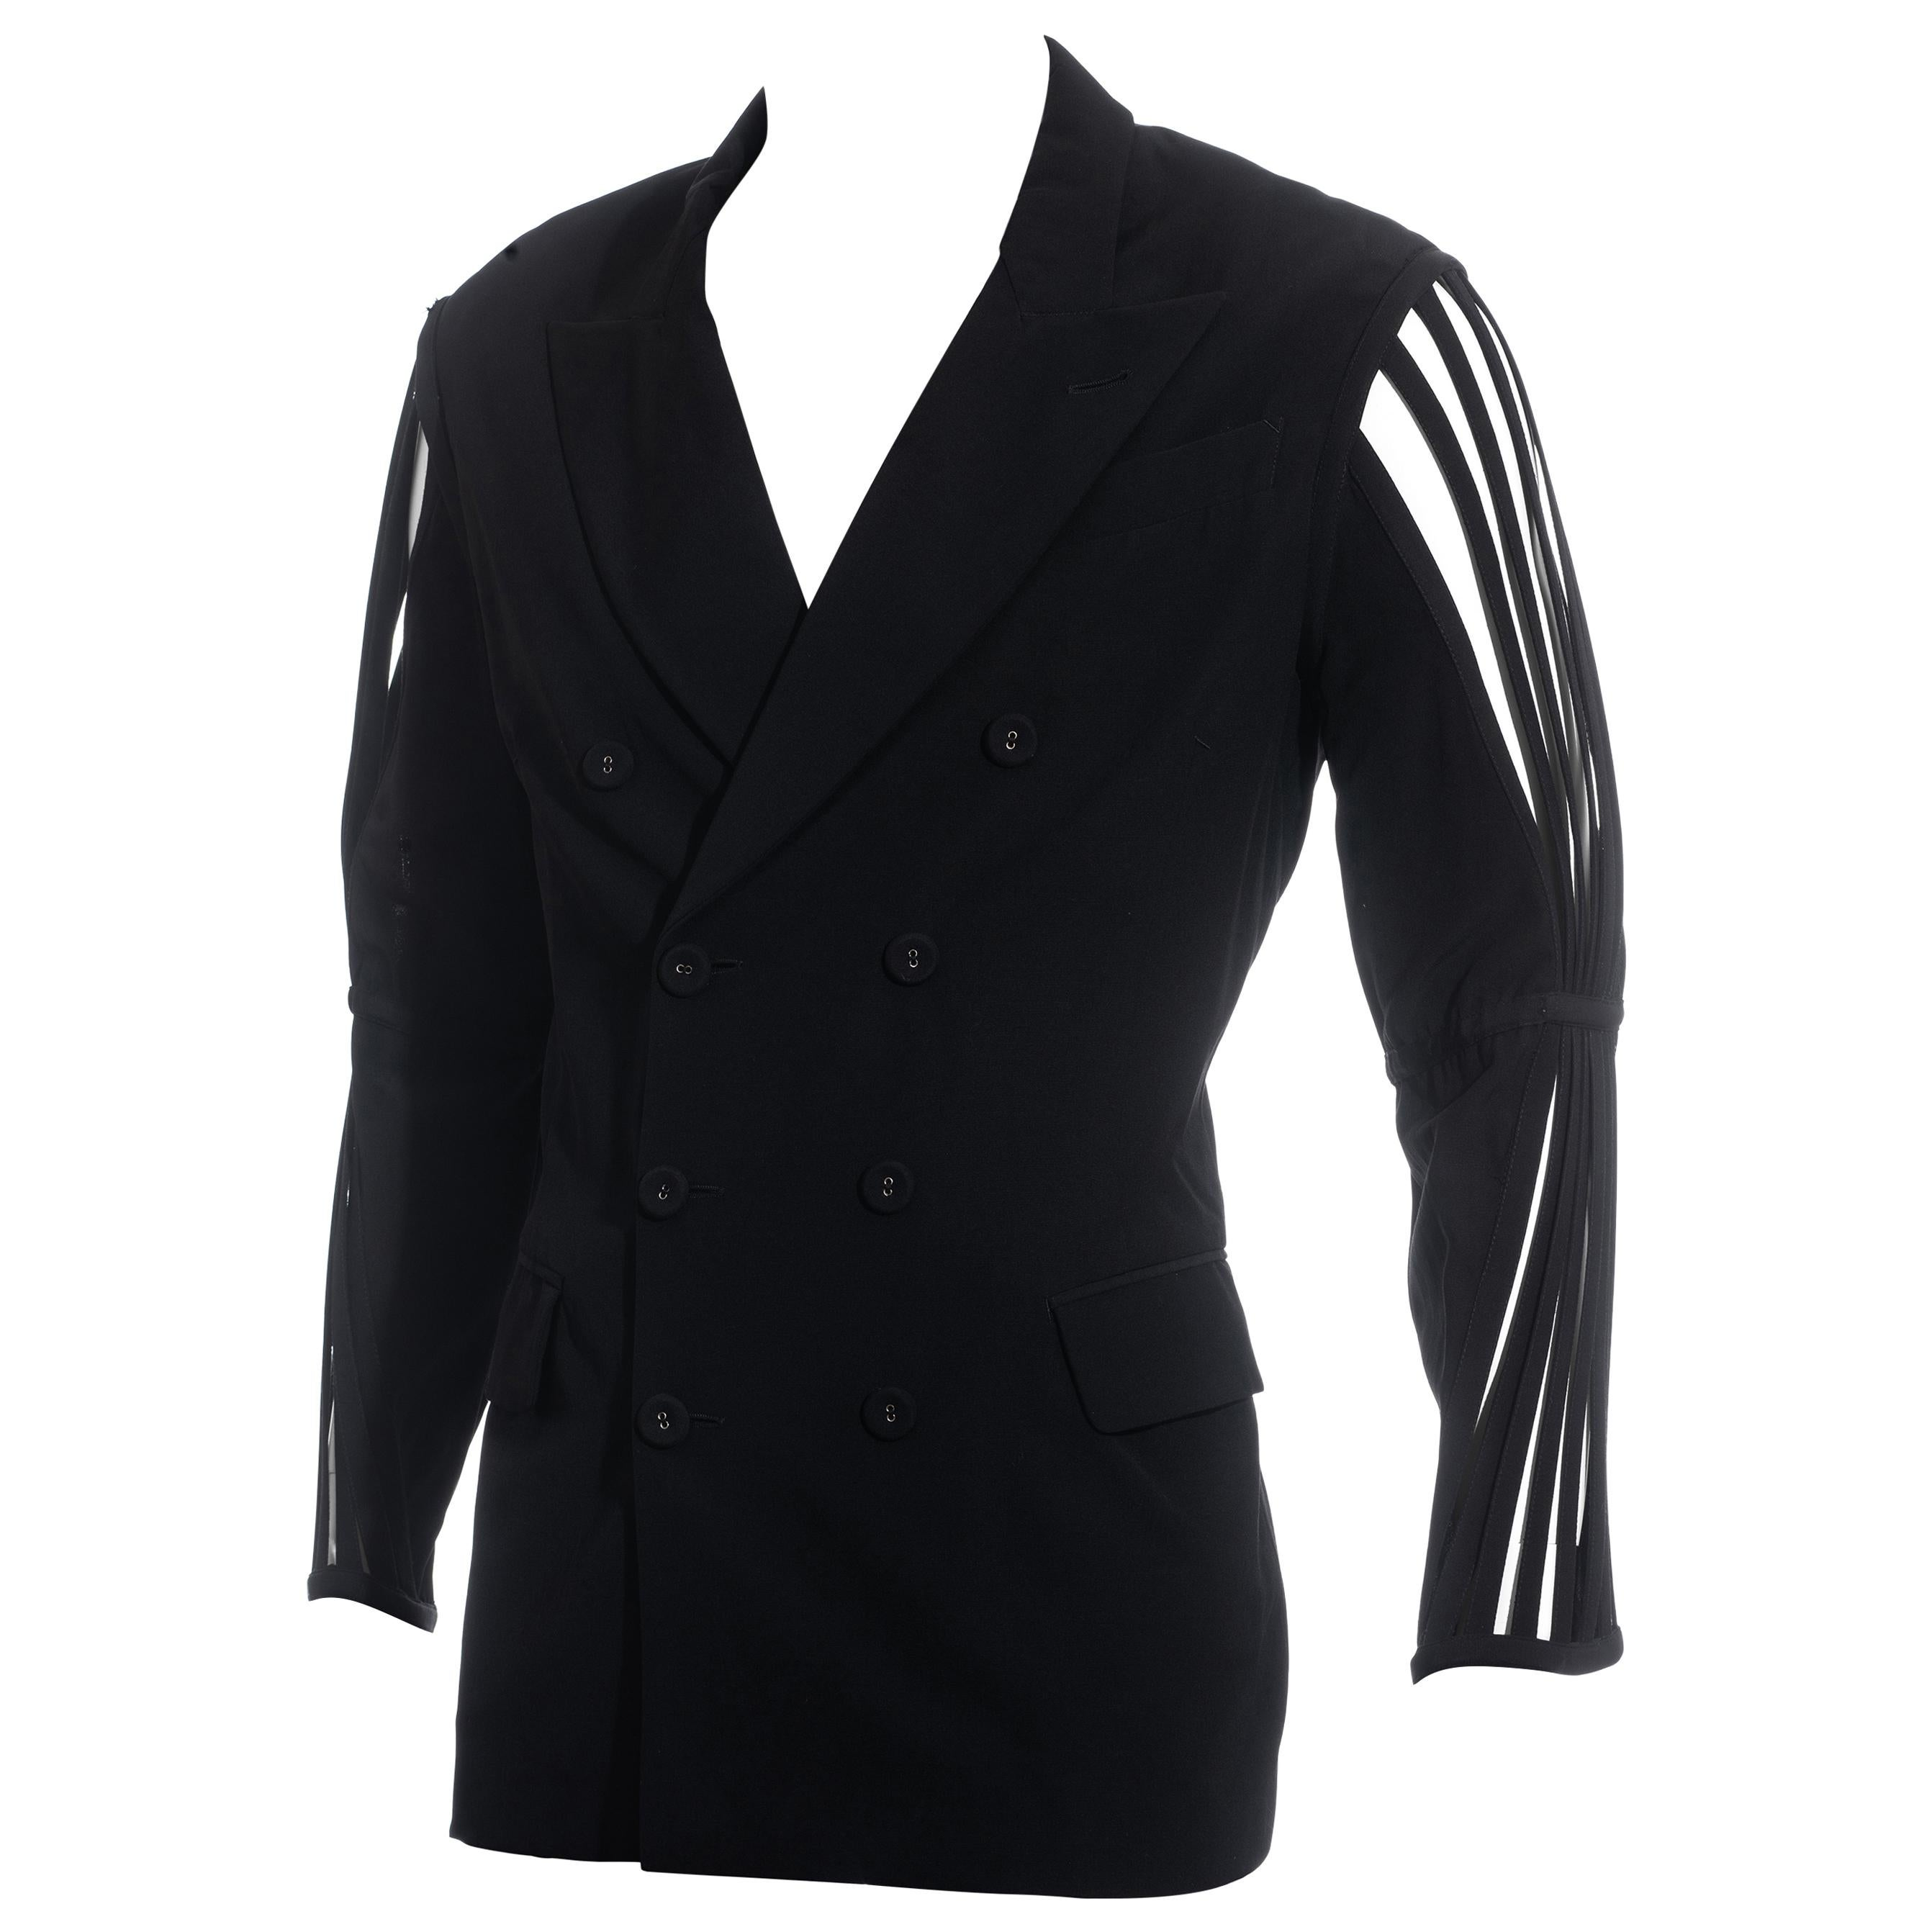 Men's Jean Paul Gaultier black wool blazer jacket with caged sleeves, ss 1989